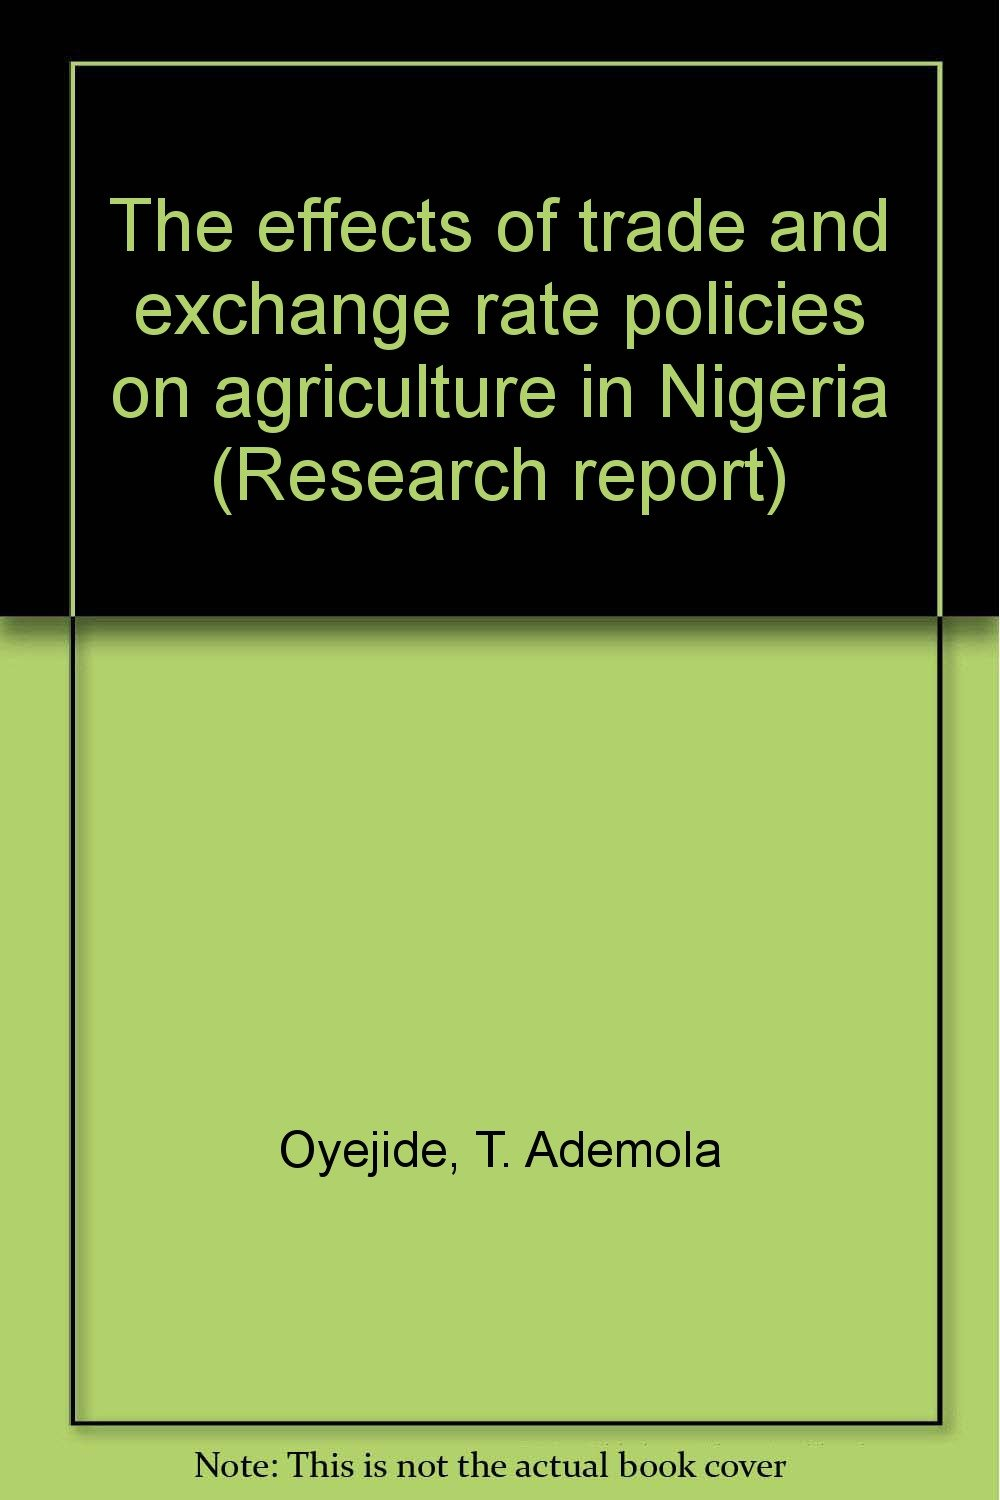 The effects of trade and exchange rate policies on agriculture in Nigeria